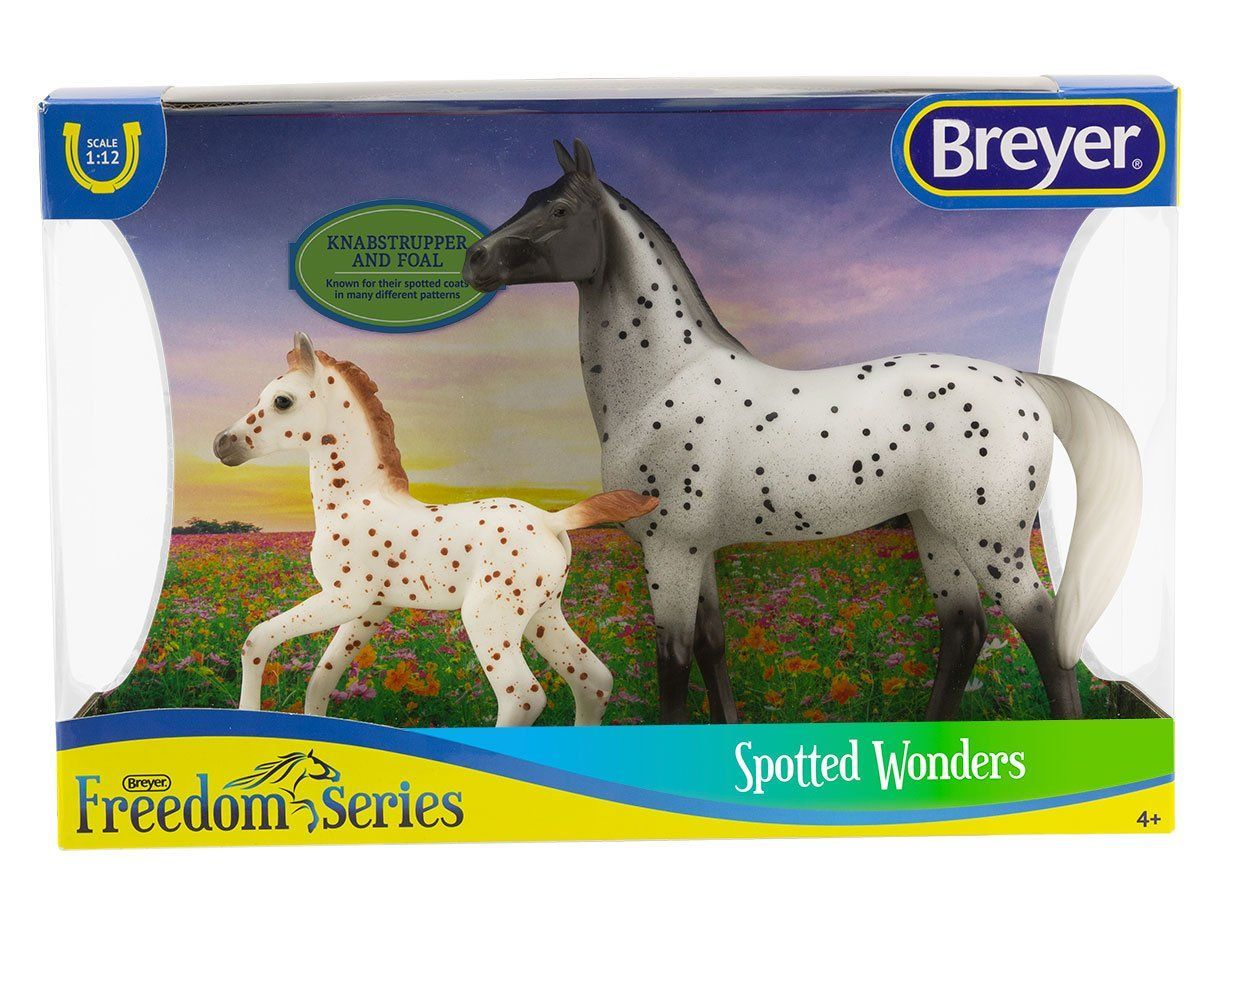 Breyer Classics #62207 Spotted Wonders Horse - New Factory Sealed